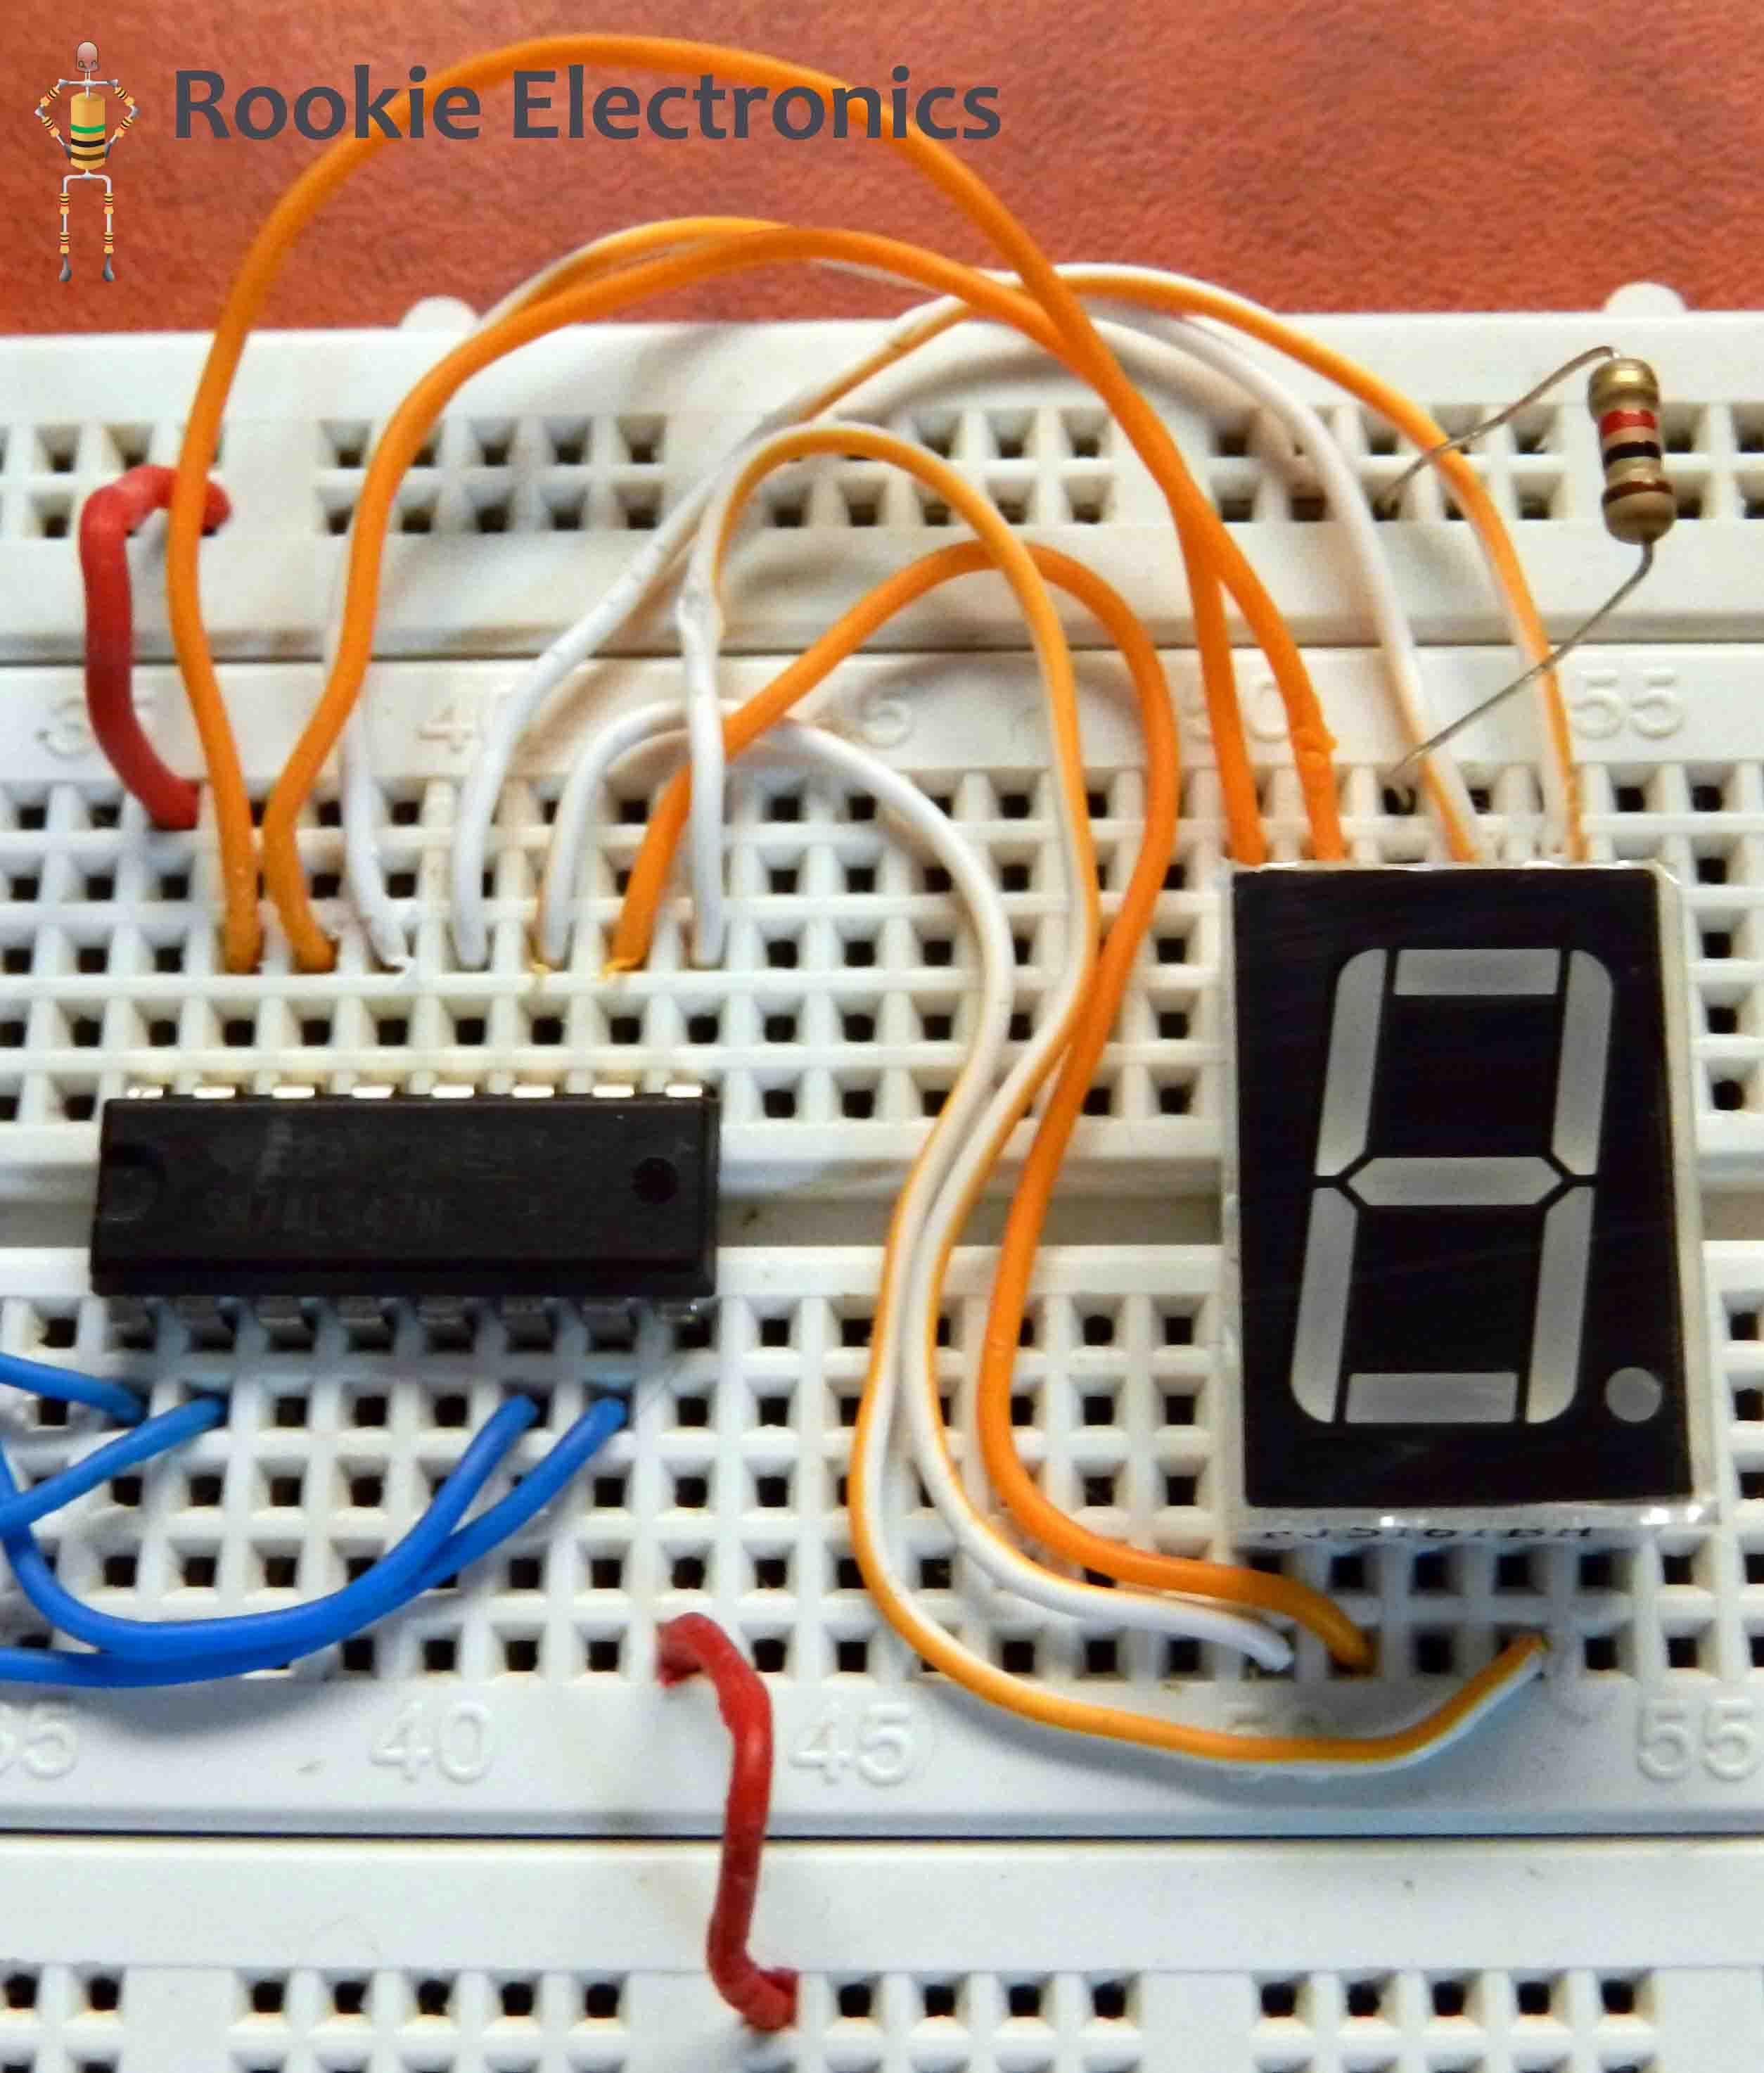 Add a Seven Segment LED display to your AVR microcontroller